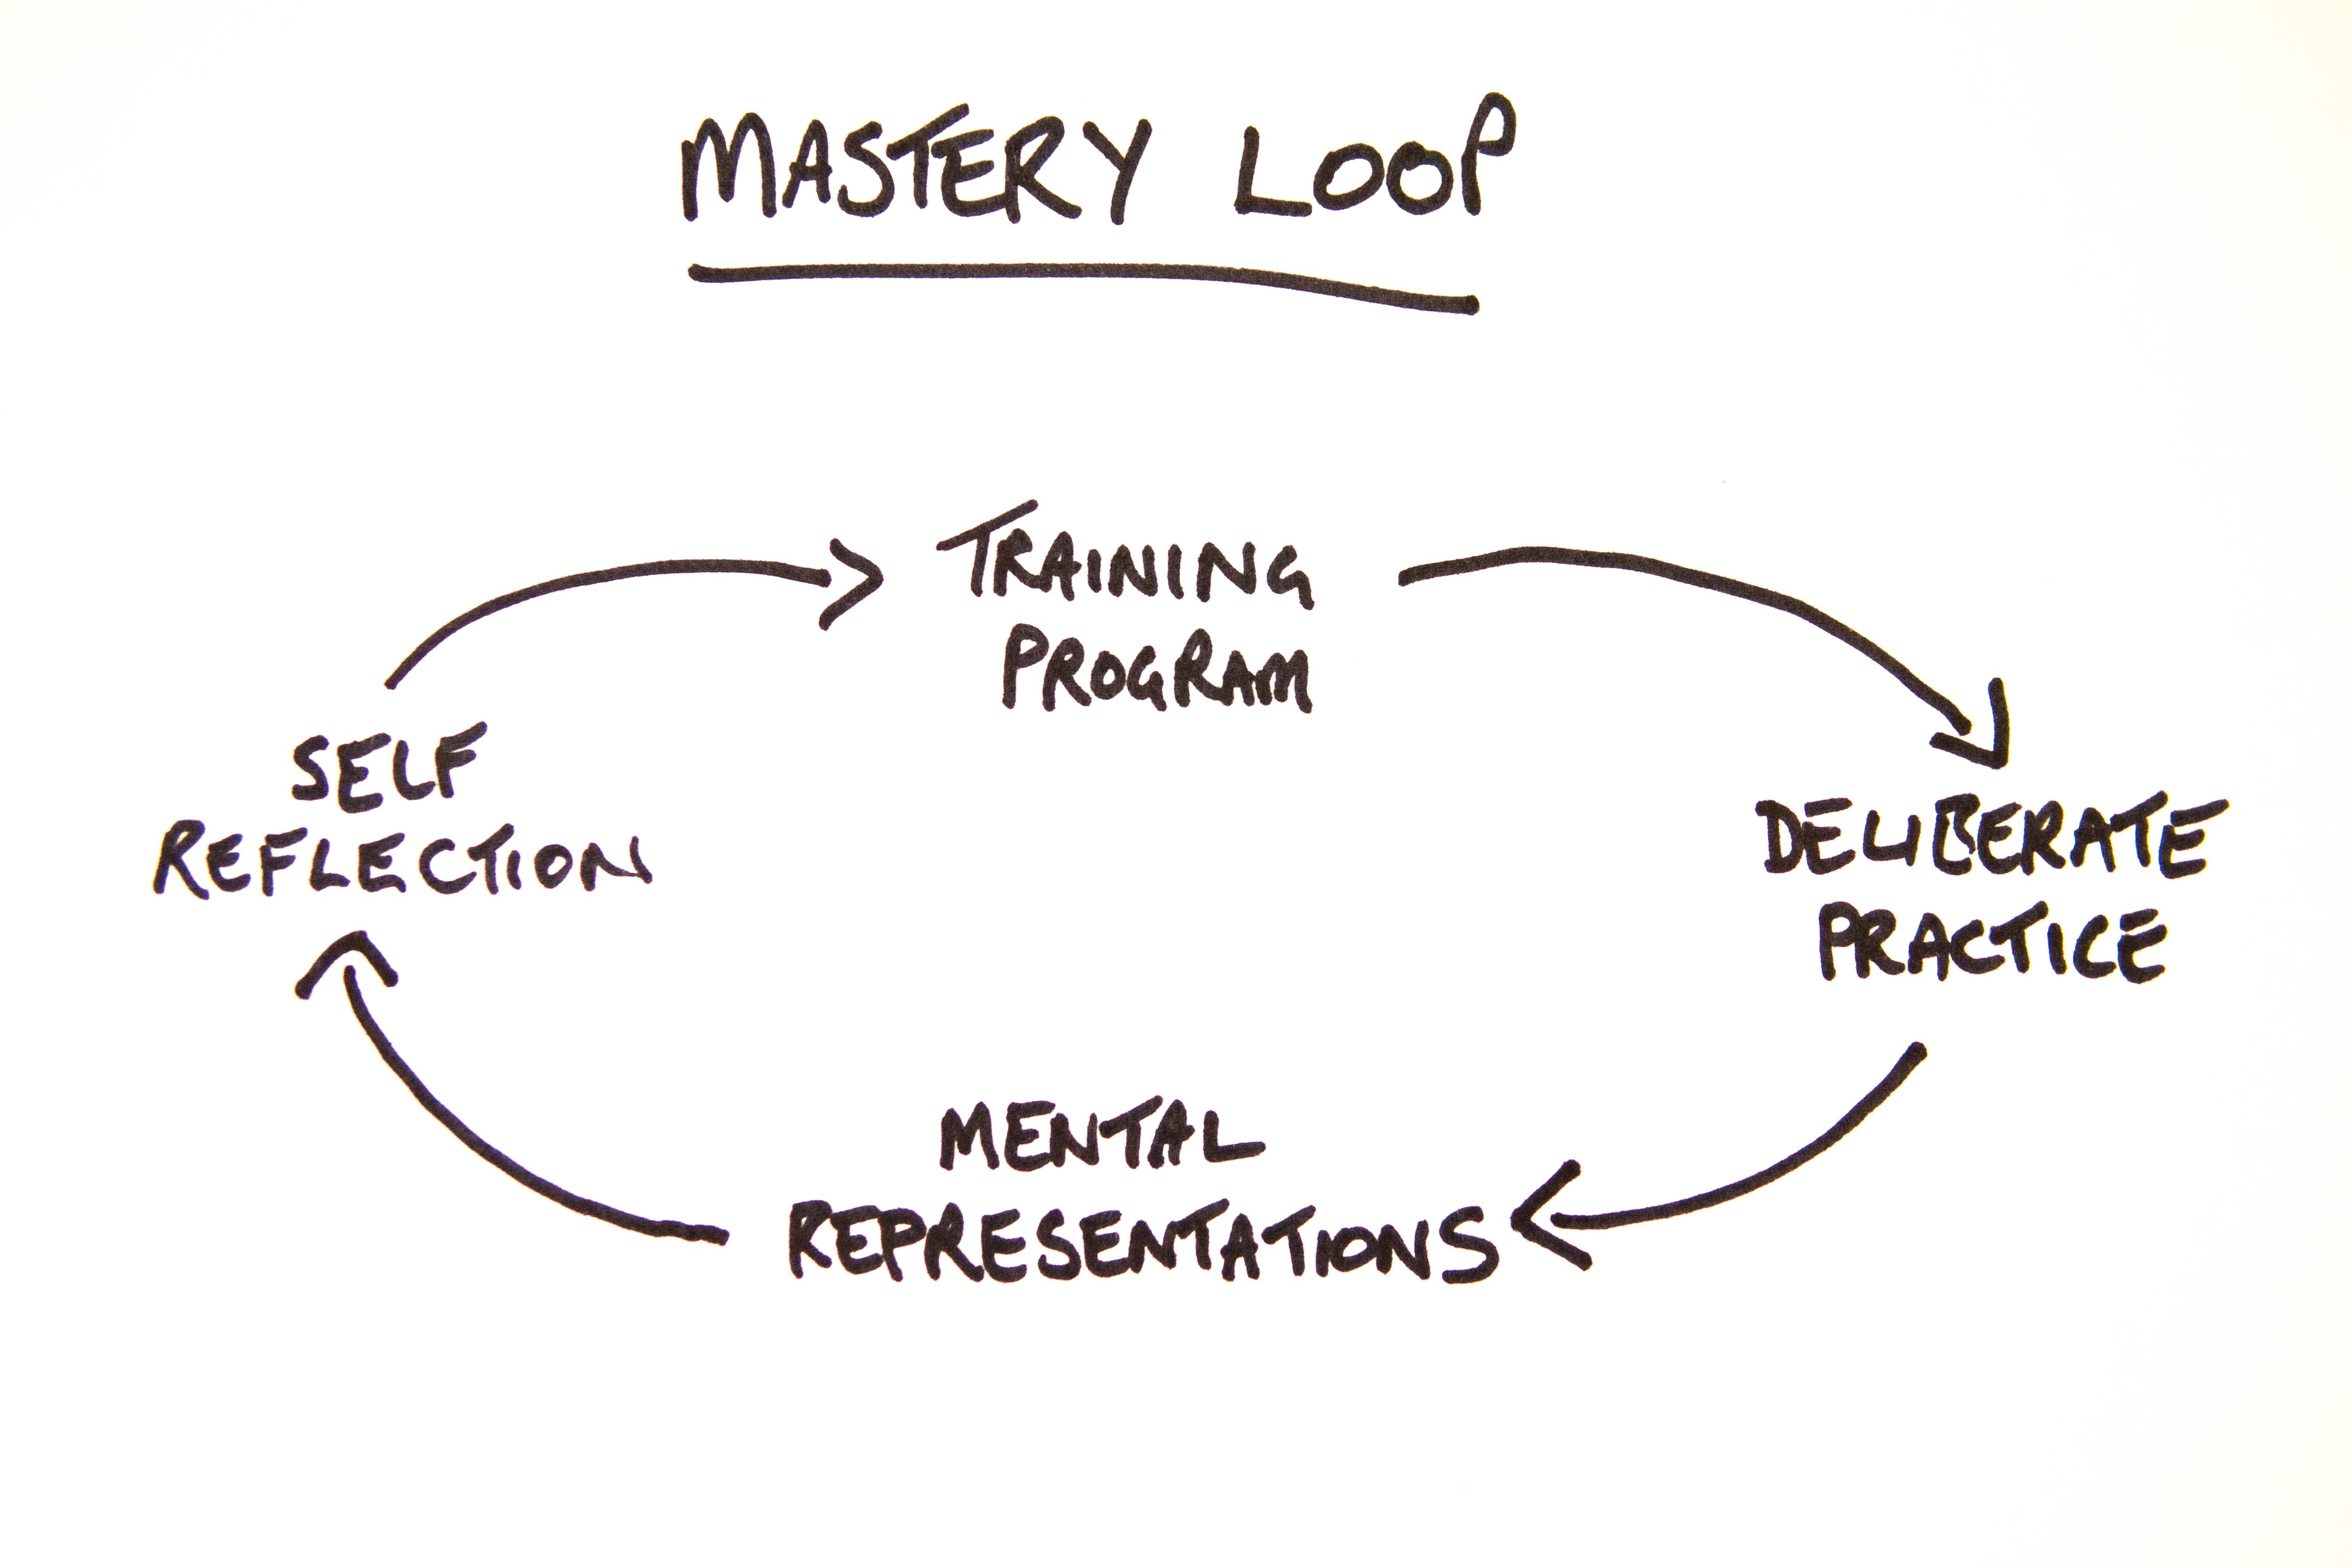 Mastery loop diagram